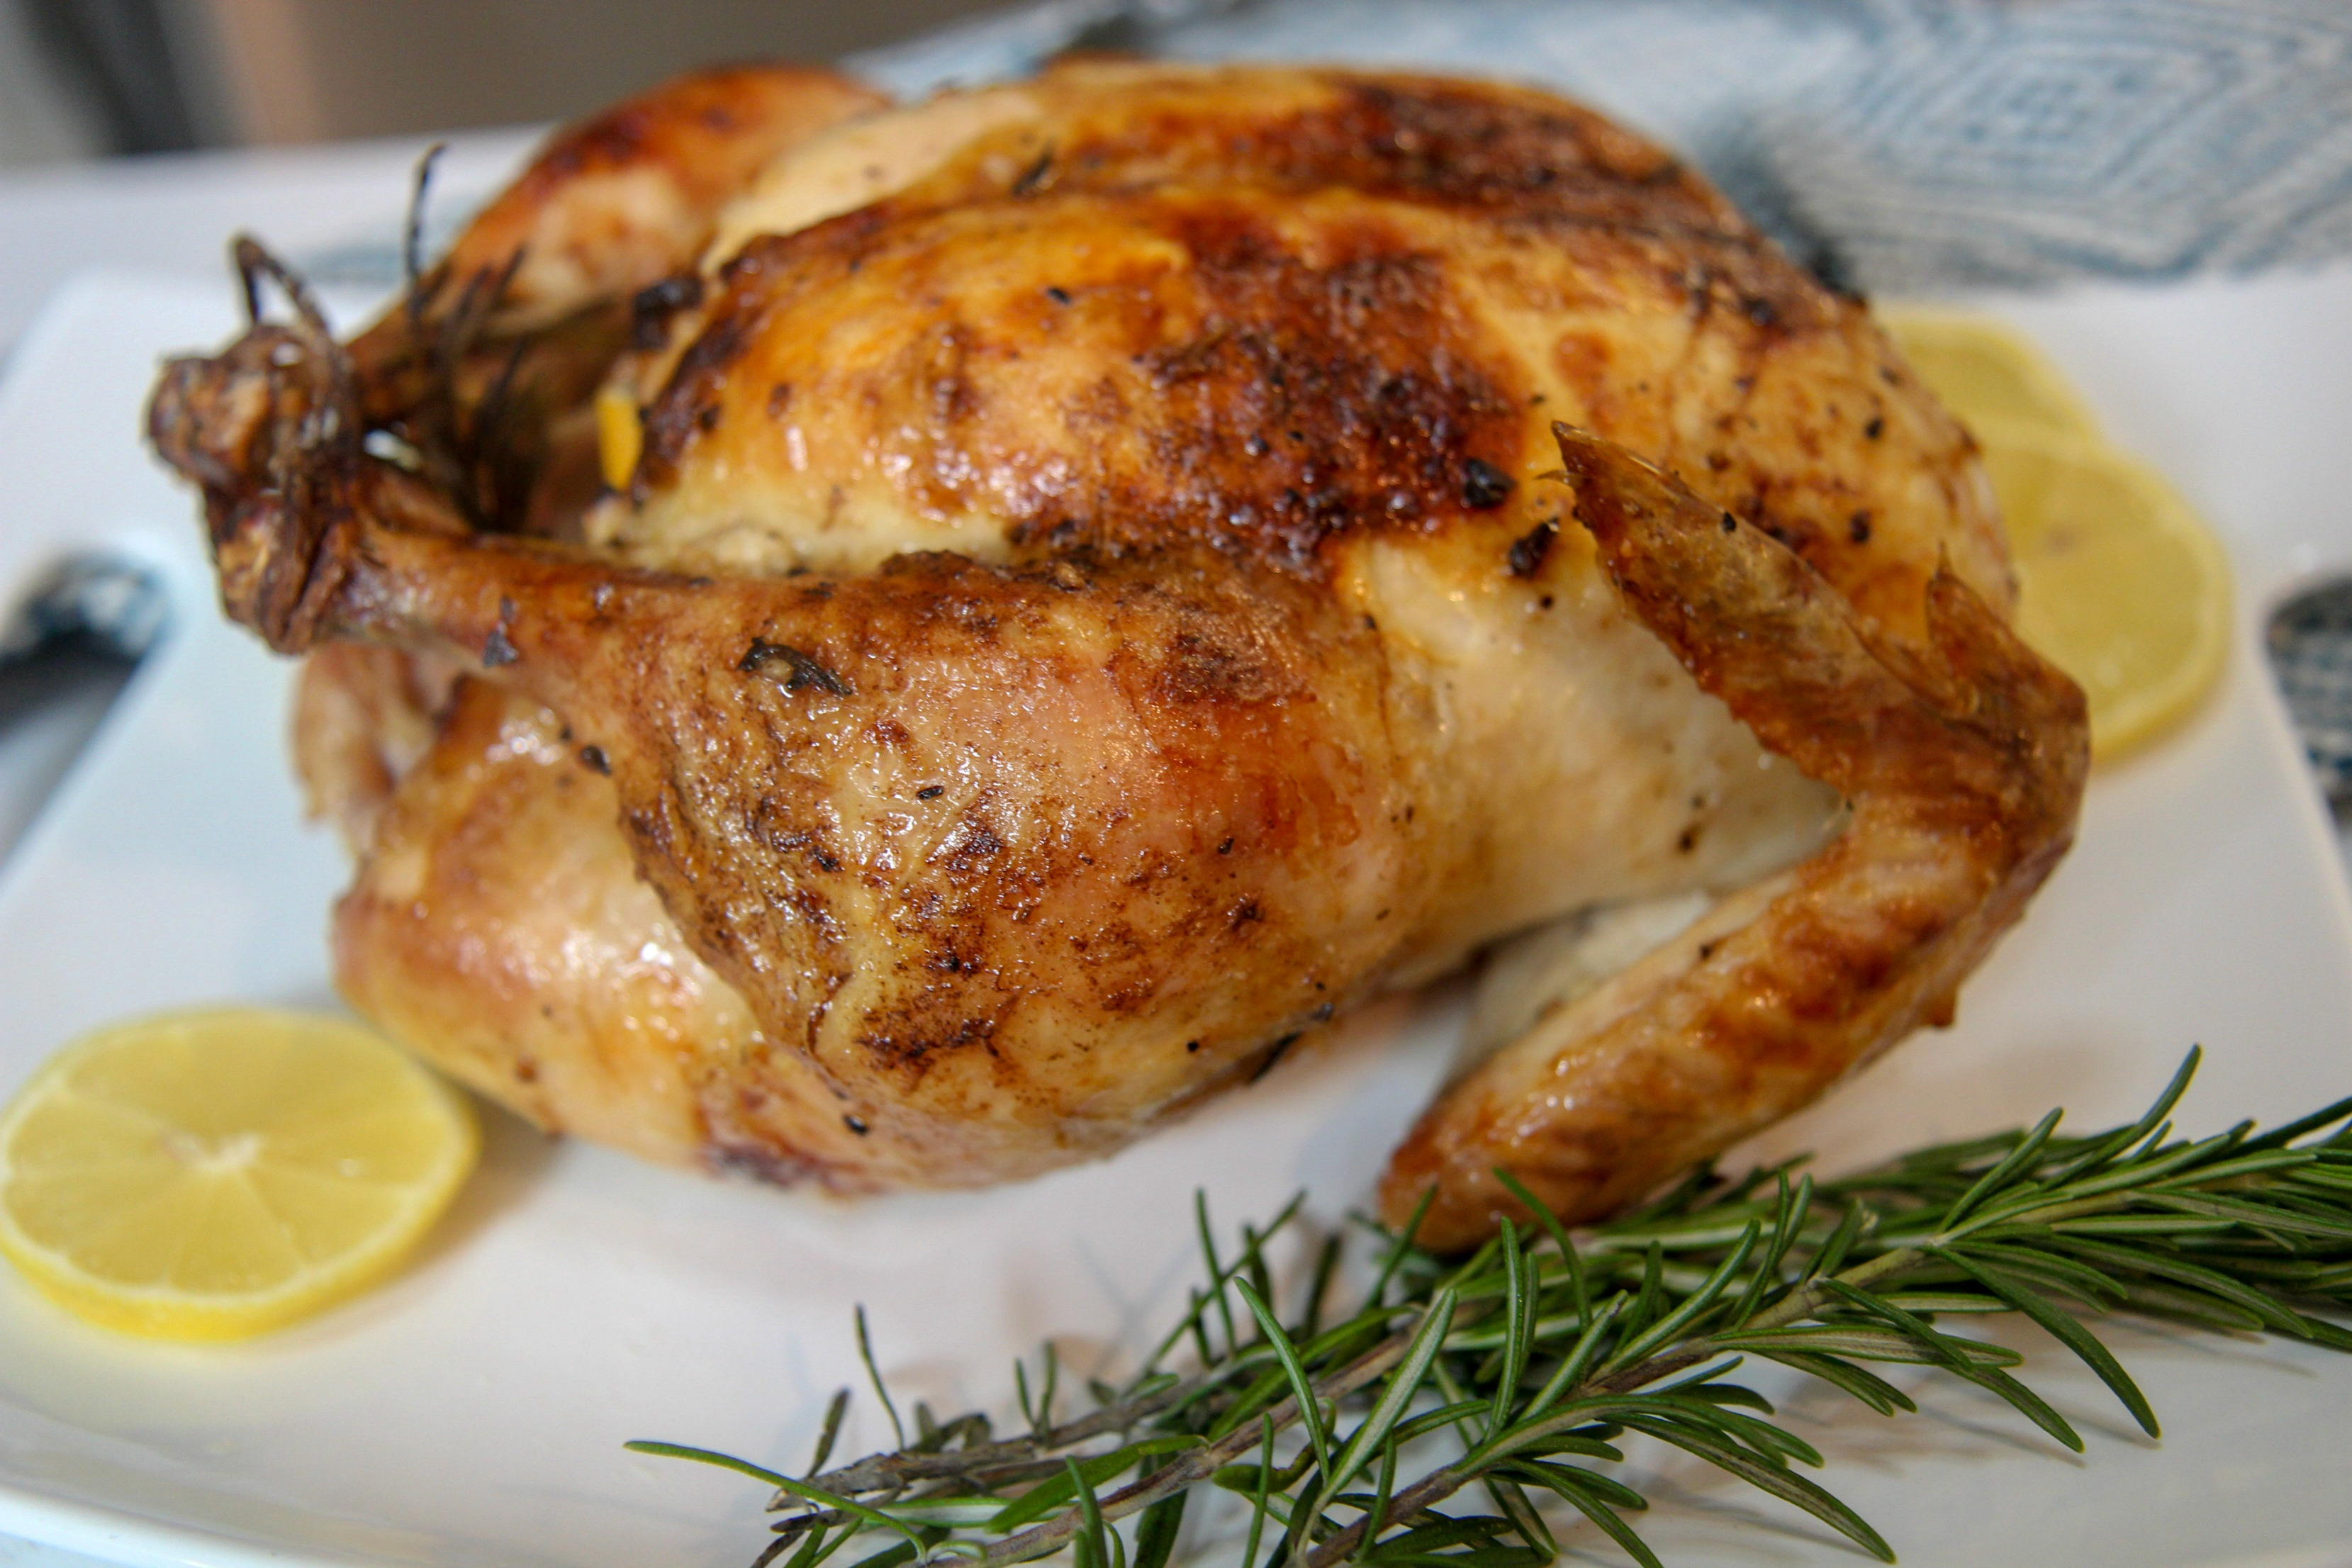 Brined overnight for super flavorful and moist chicken, you'll love this lemon rosemary chicken dinner